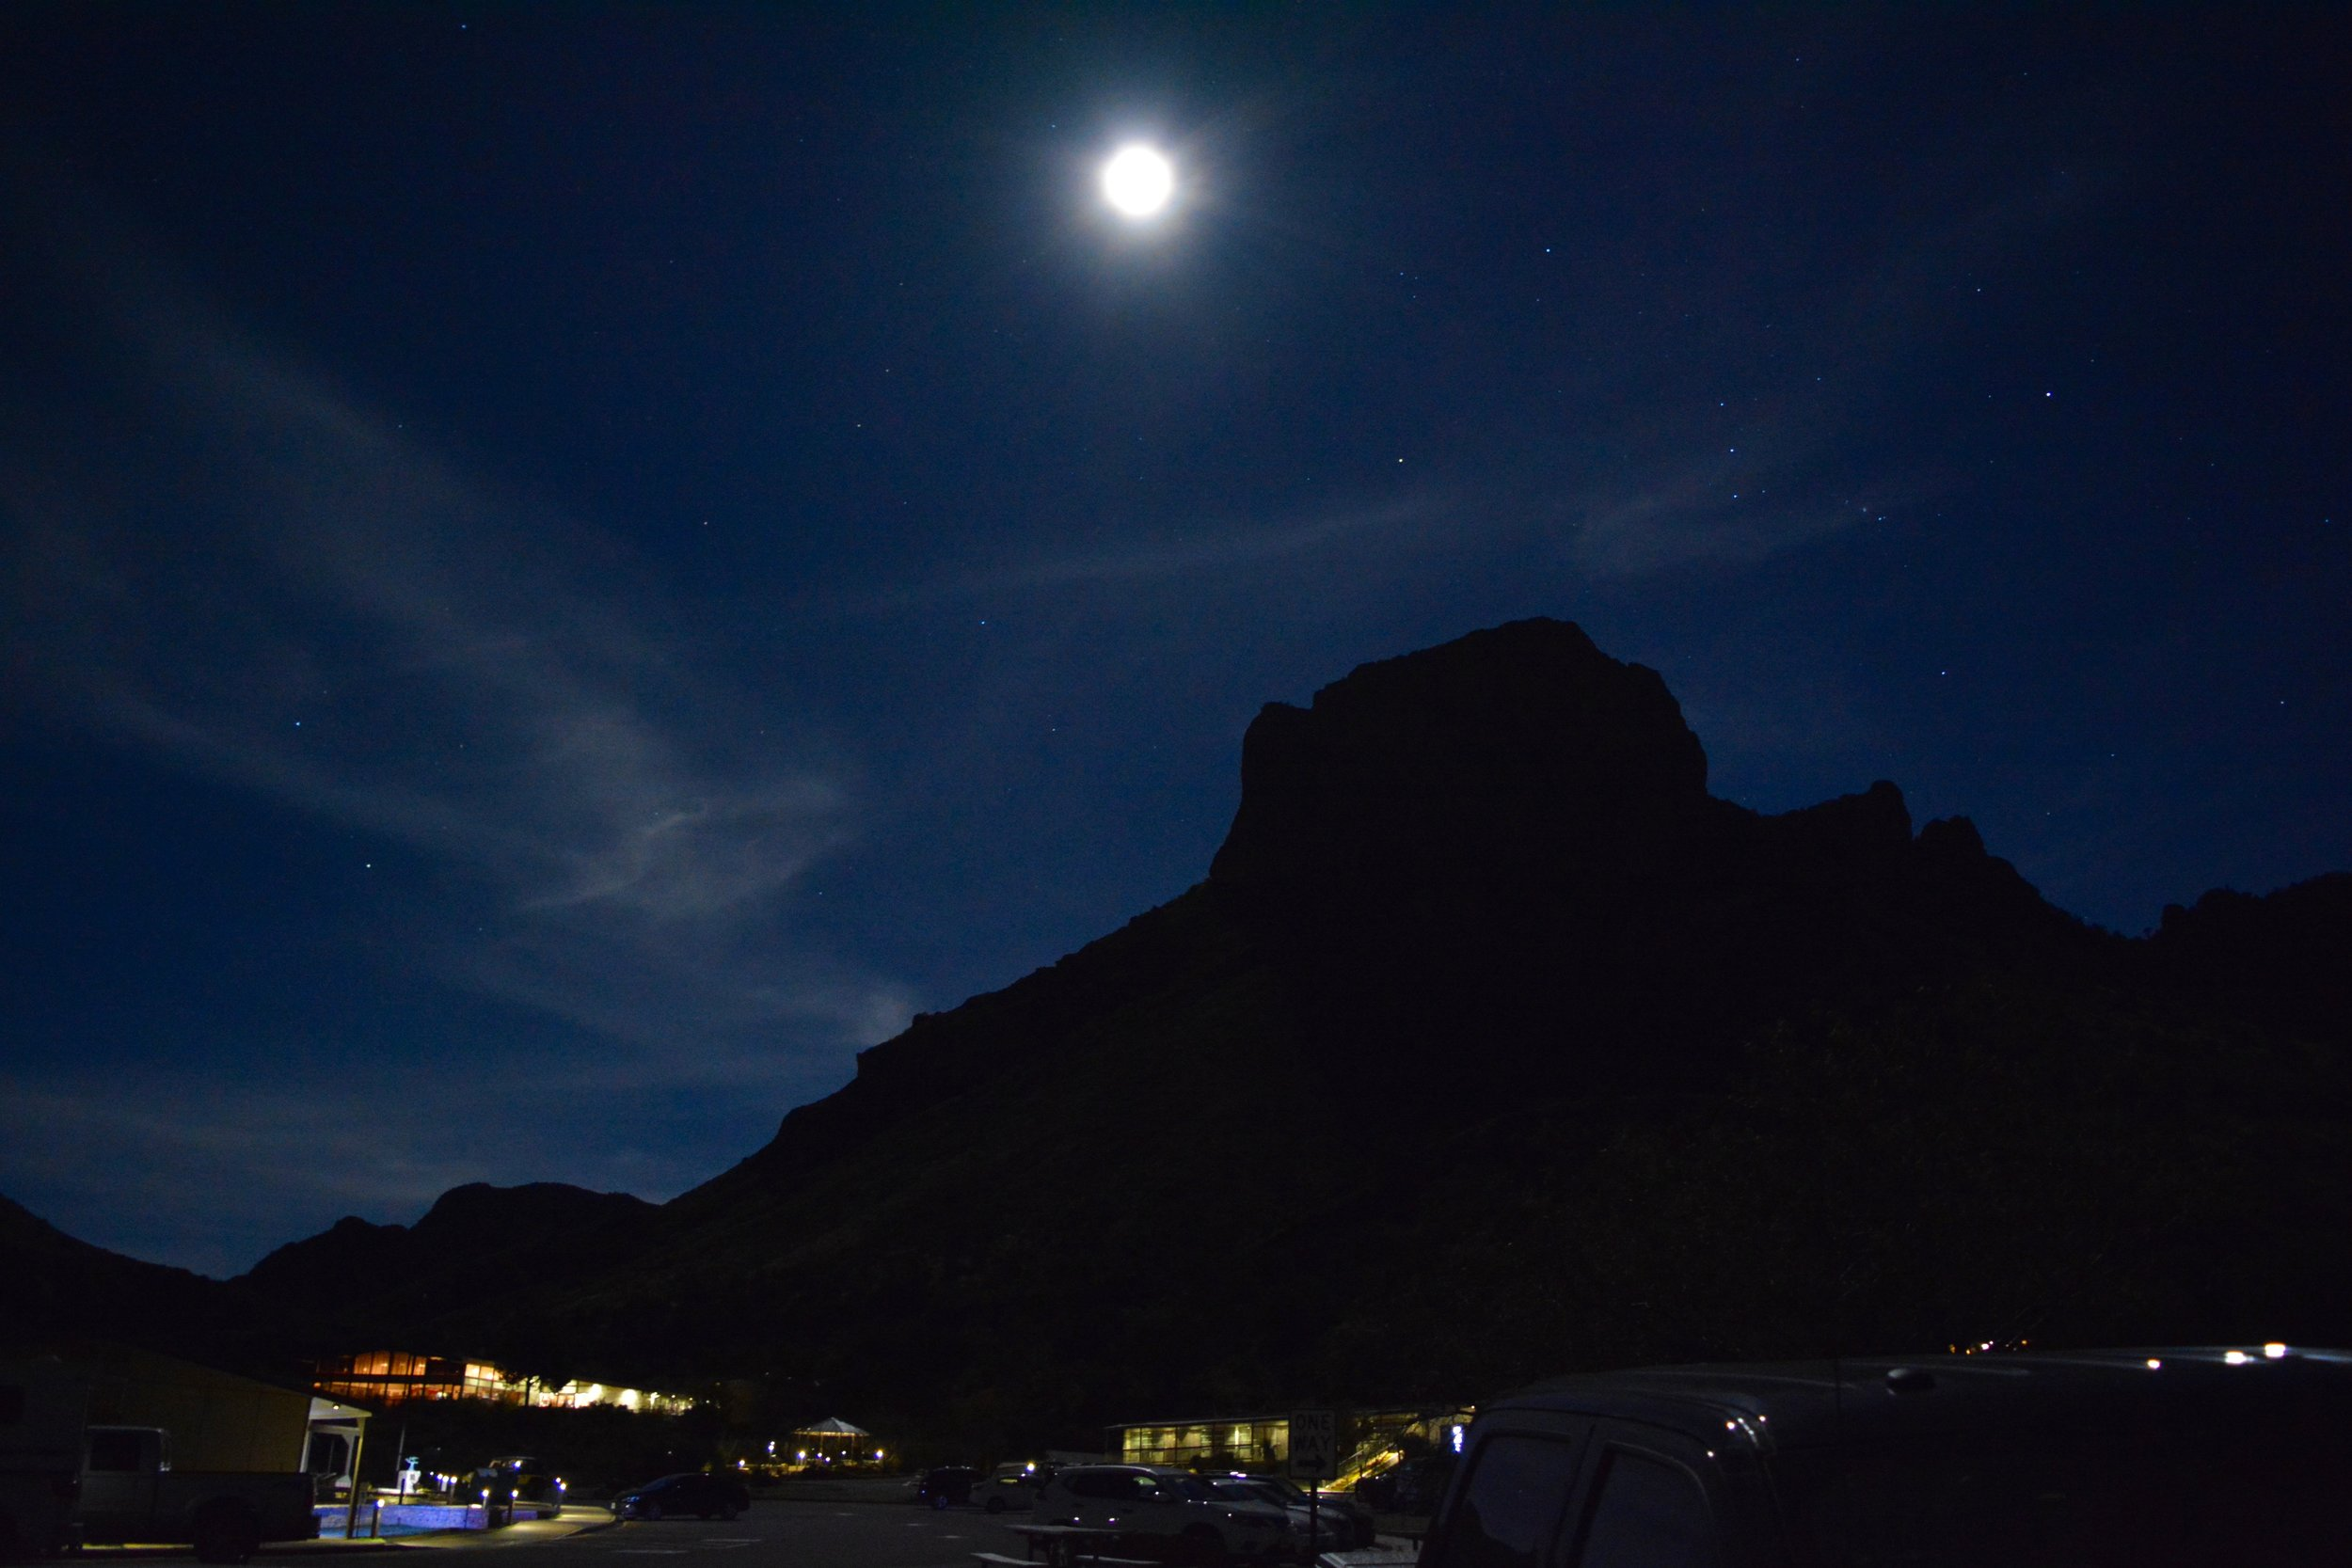 The full moon and night sky above the Chisos Mountain Lodge